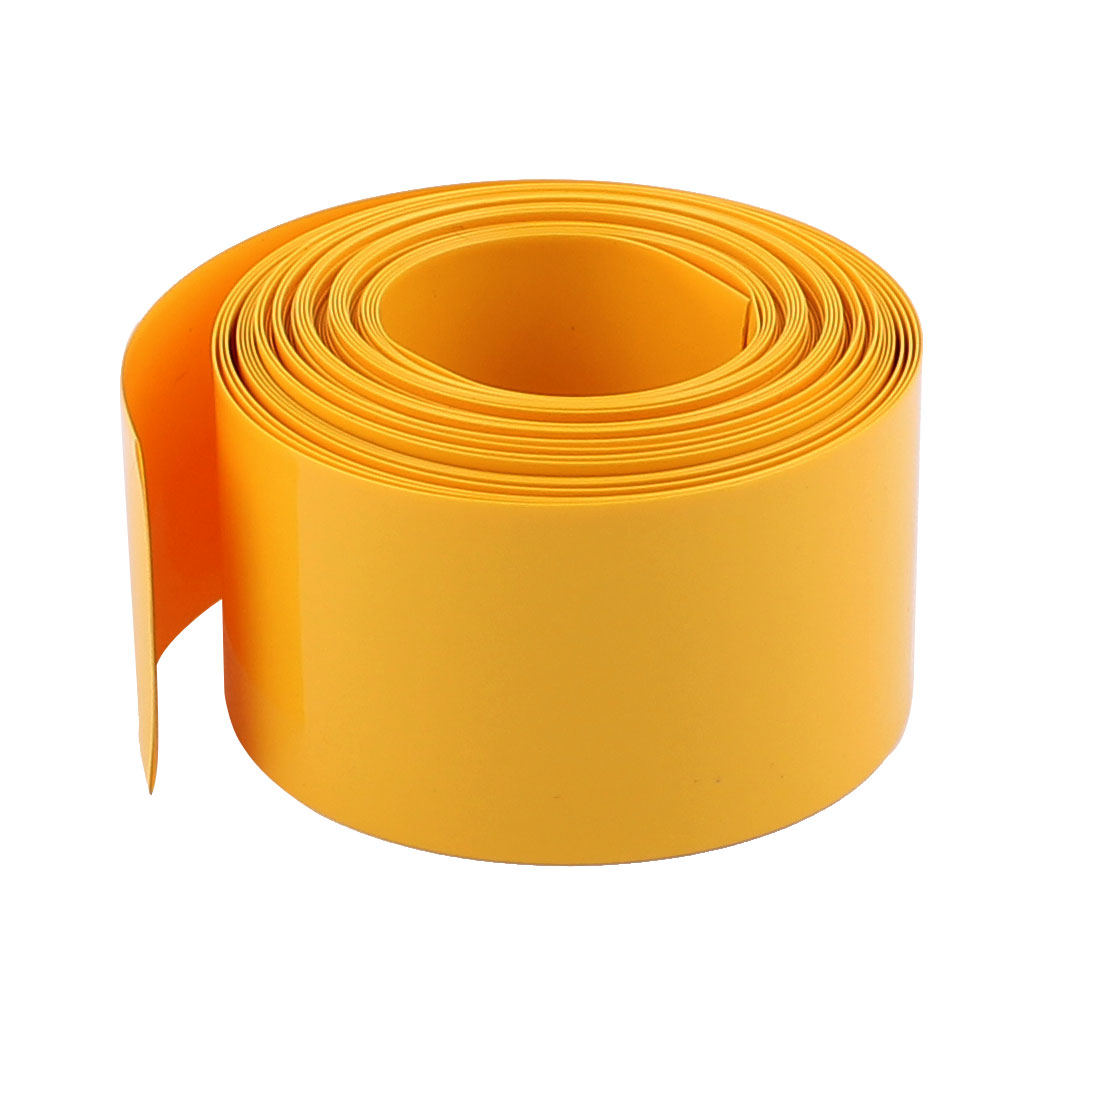 5m x 18.5mm Dia Yellow PVC Insulated Heat Shrink Tube Battery Protective Casing